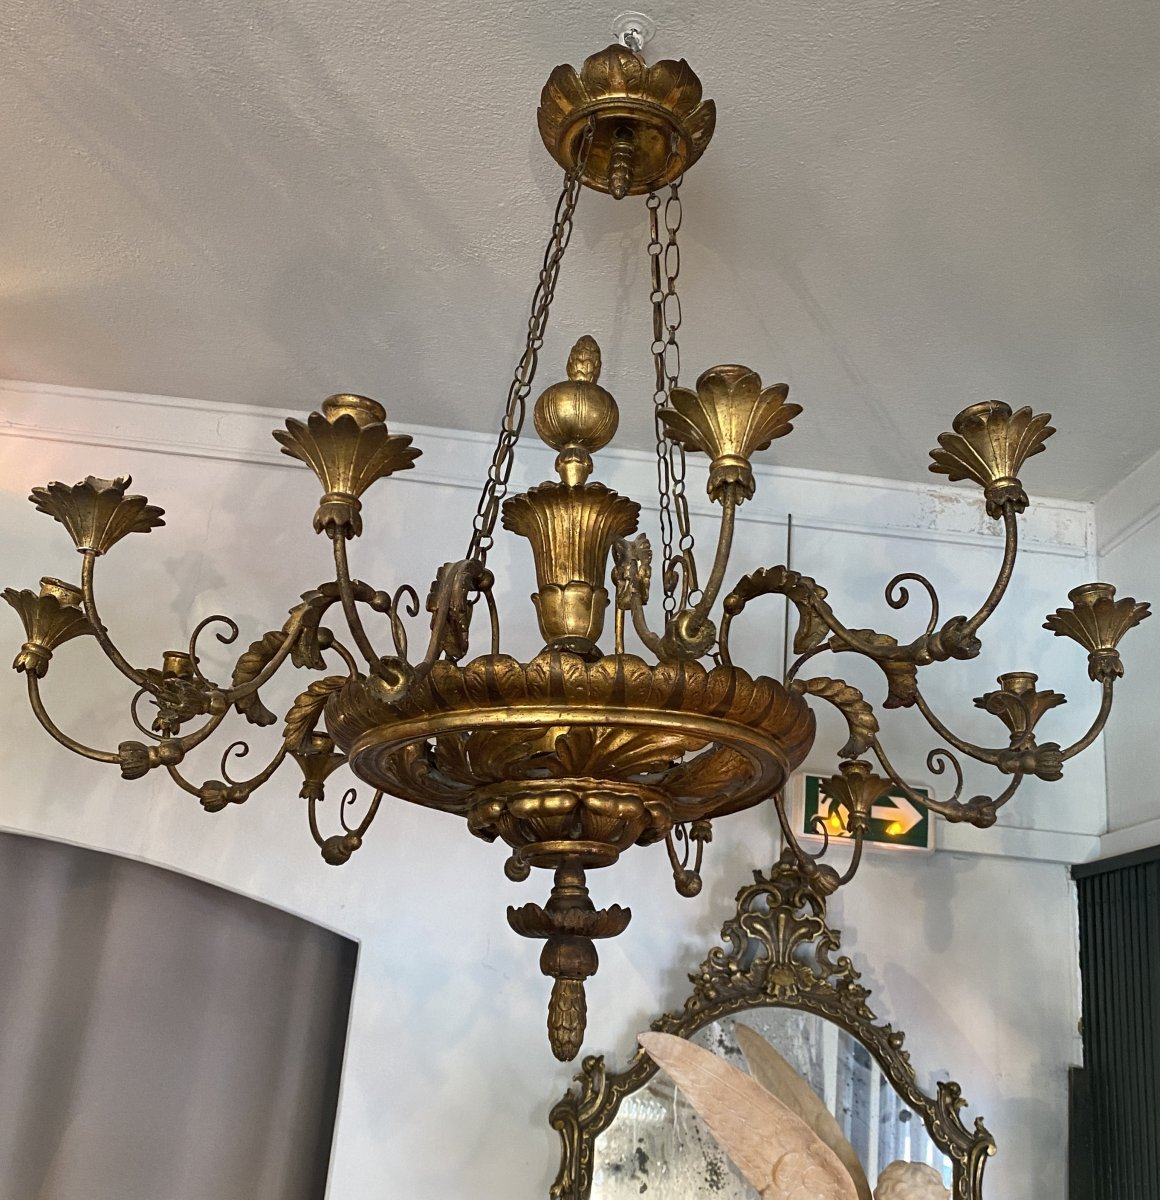 Chandelier With 12 Arms Of Lights In Golden Wood, Italy, XIXth Century